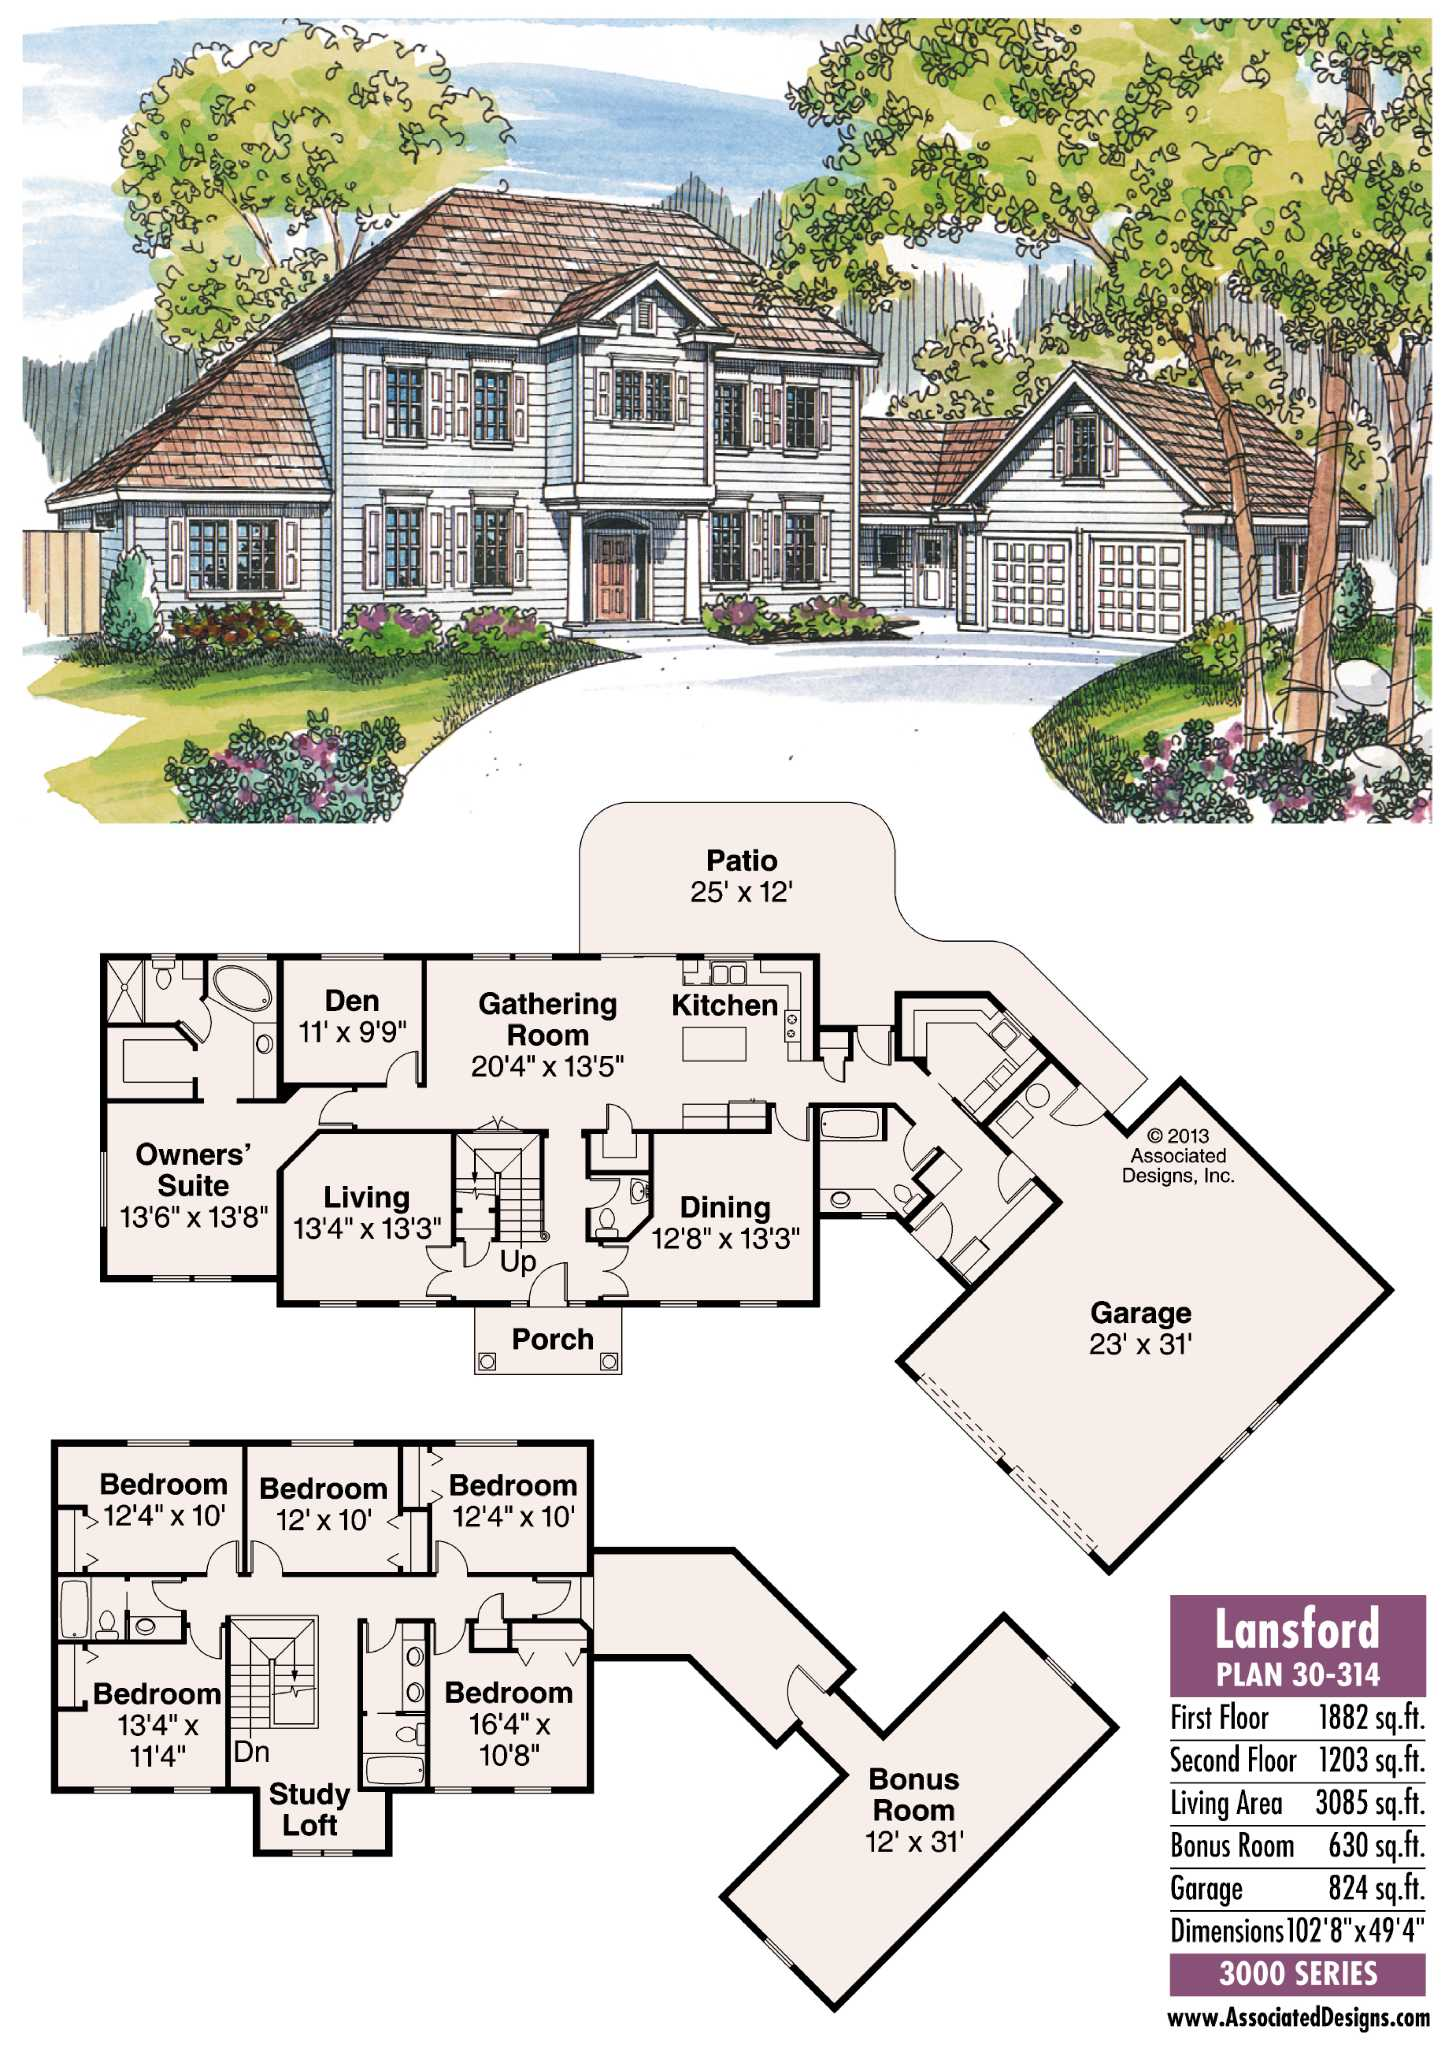 House Plans Lansford Traditional Yet Modern